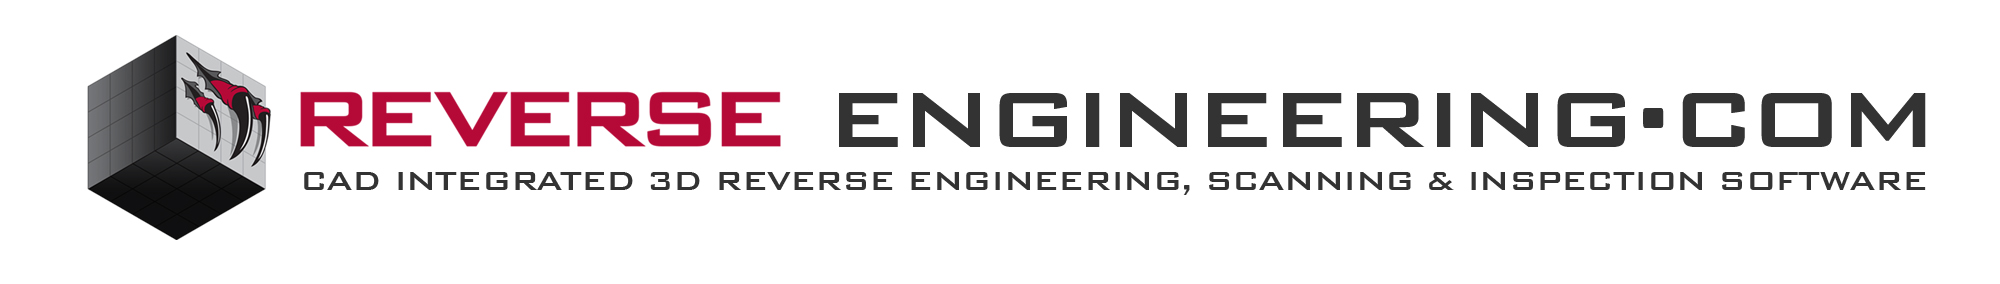 REVERSE ENGINEERING.COM, Logo